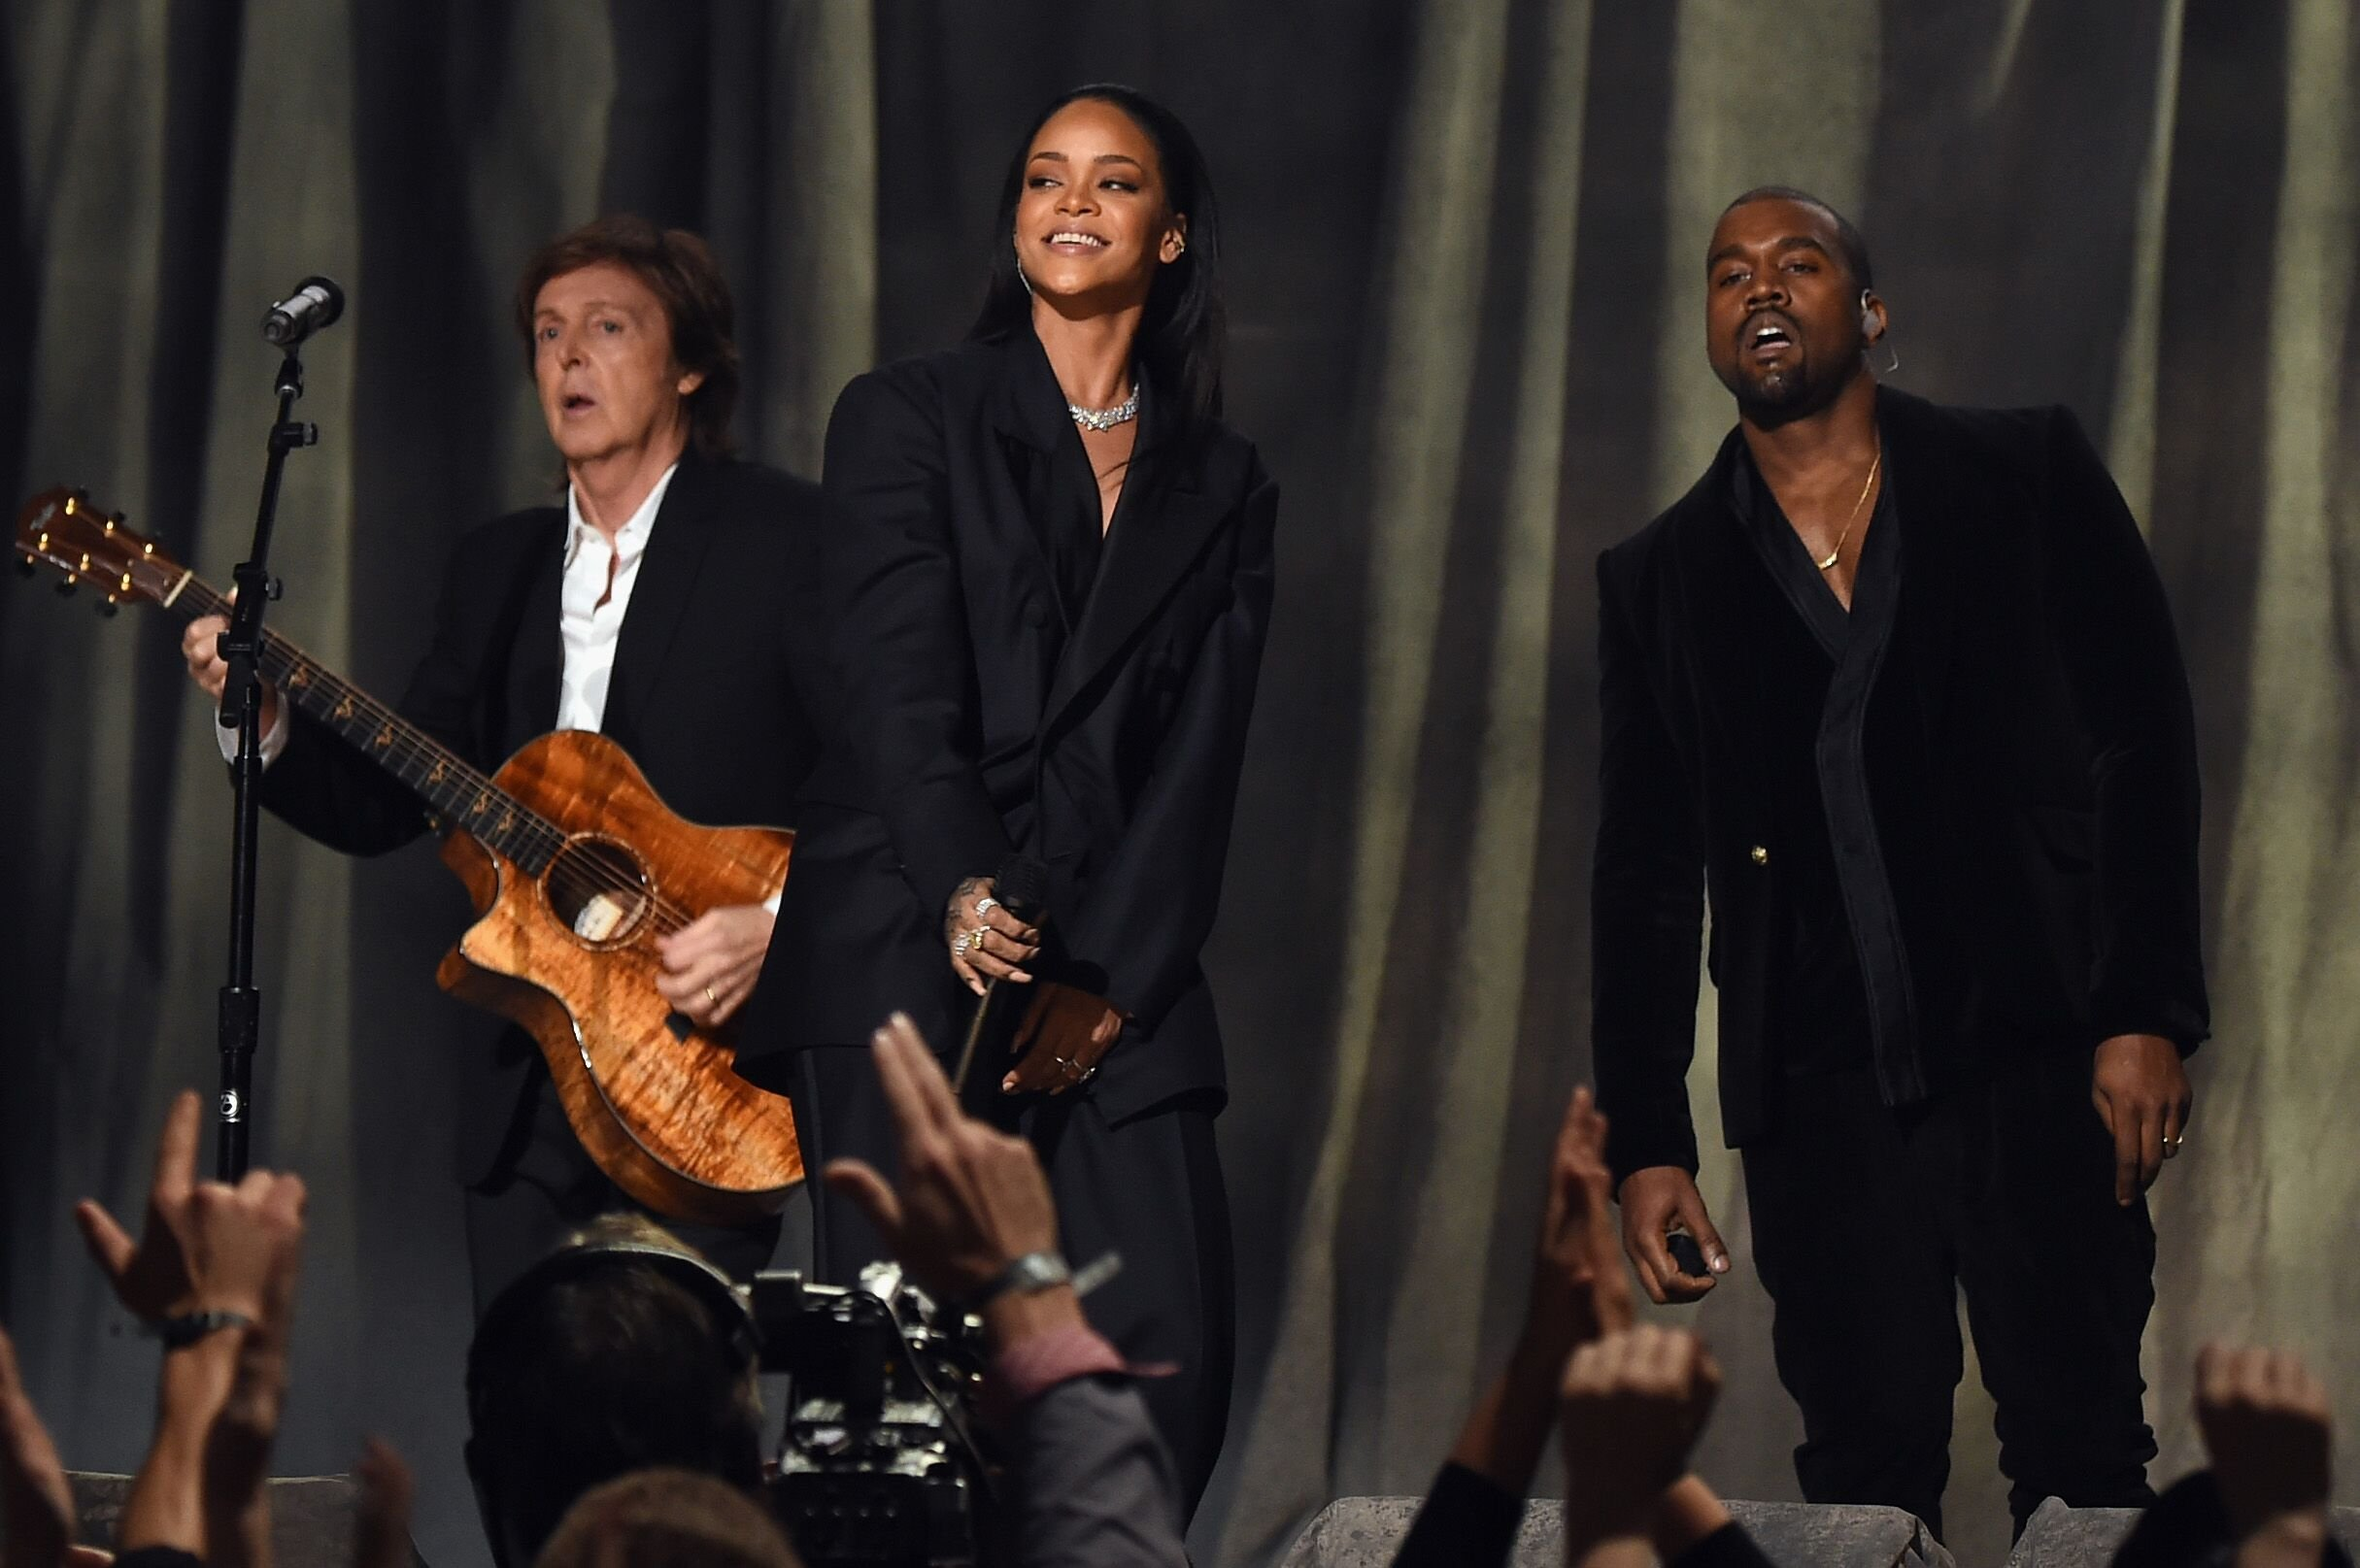 """Paul McCartney, Rihanna and Kanye West performing their collaboration """"FourFiveSeconds"""" 